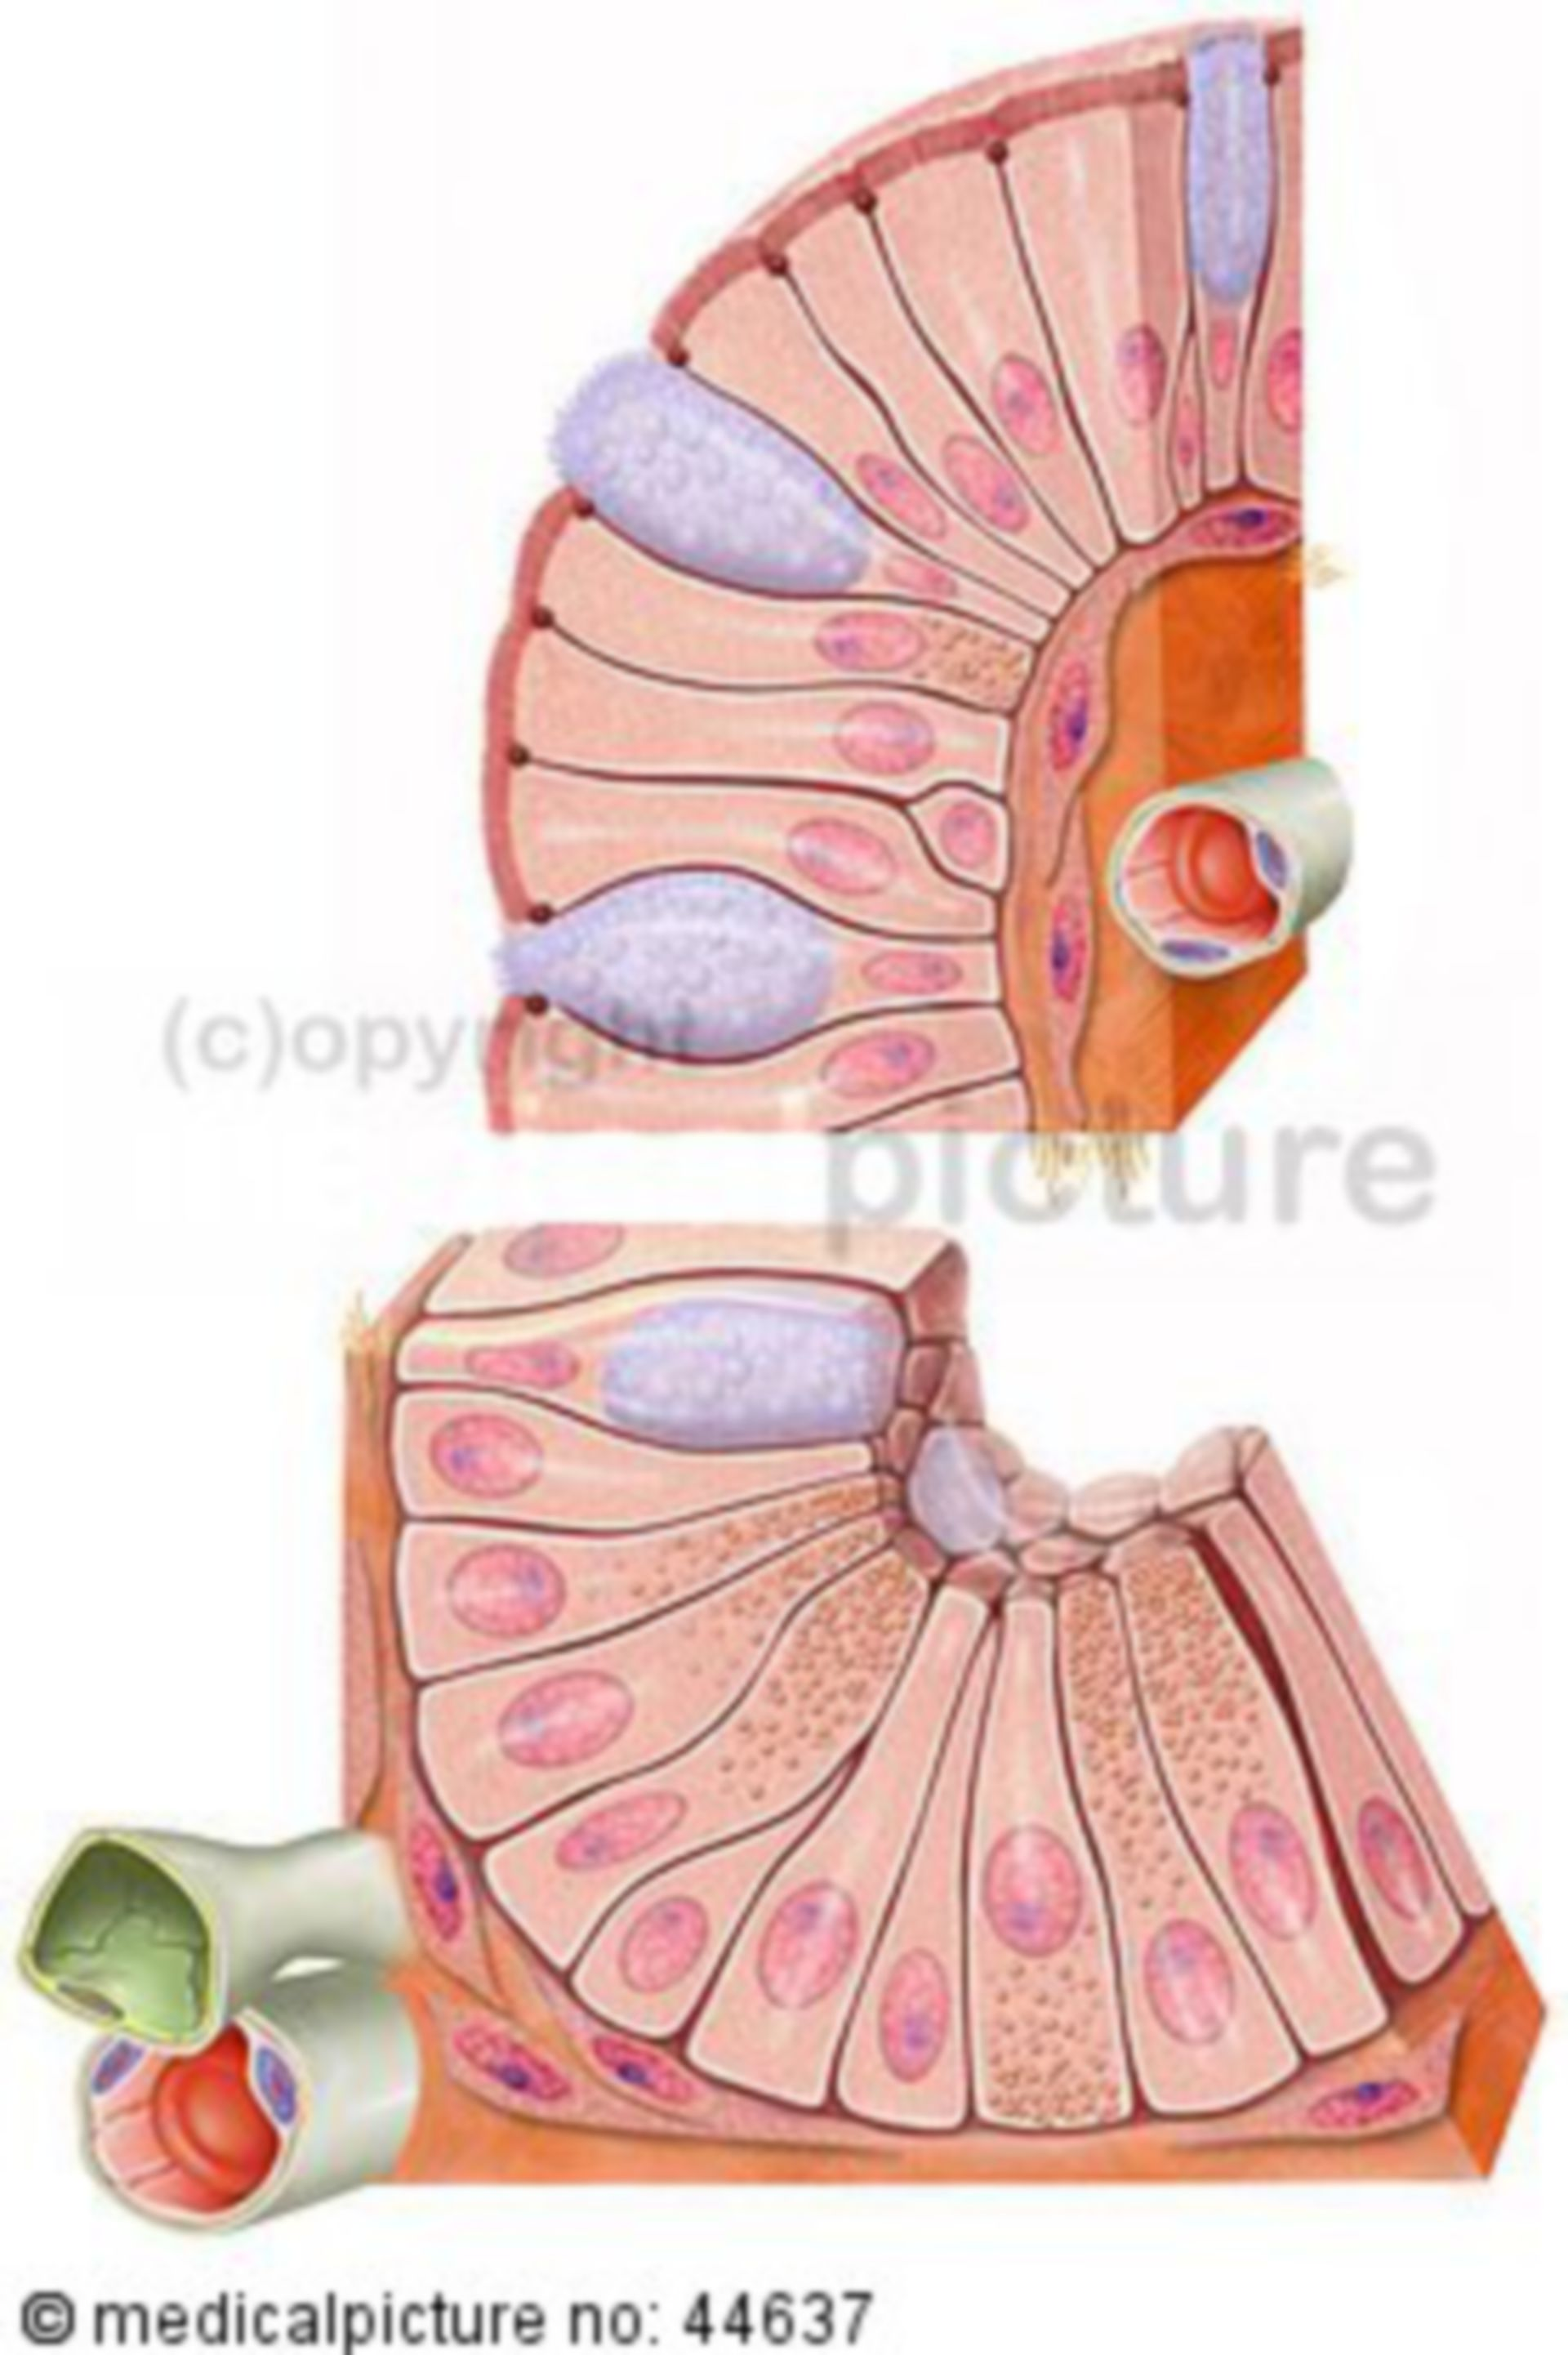 Cells of the small intestine - jejunum with vessels